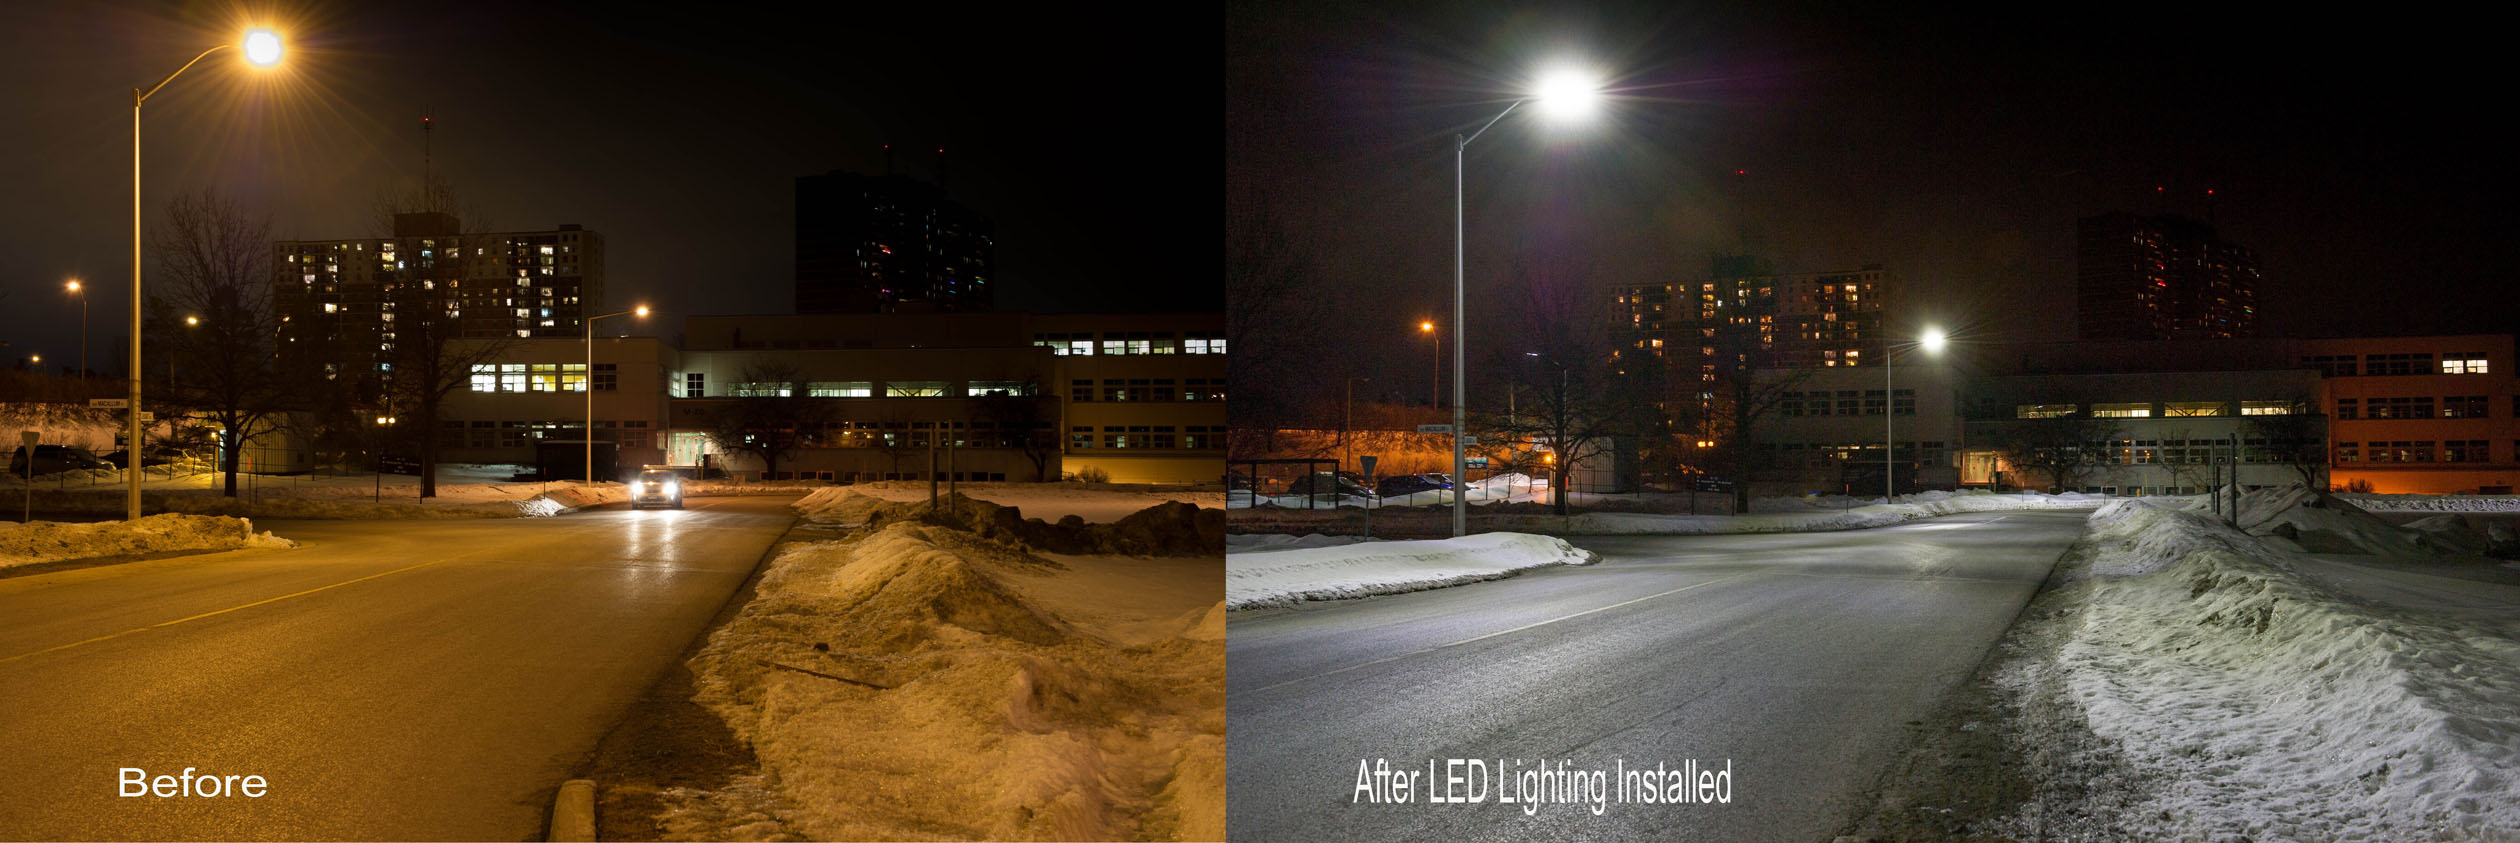 LED-Roadway-Lighting-1-before-and-after